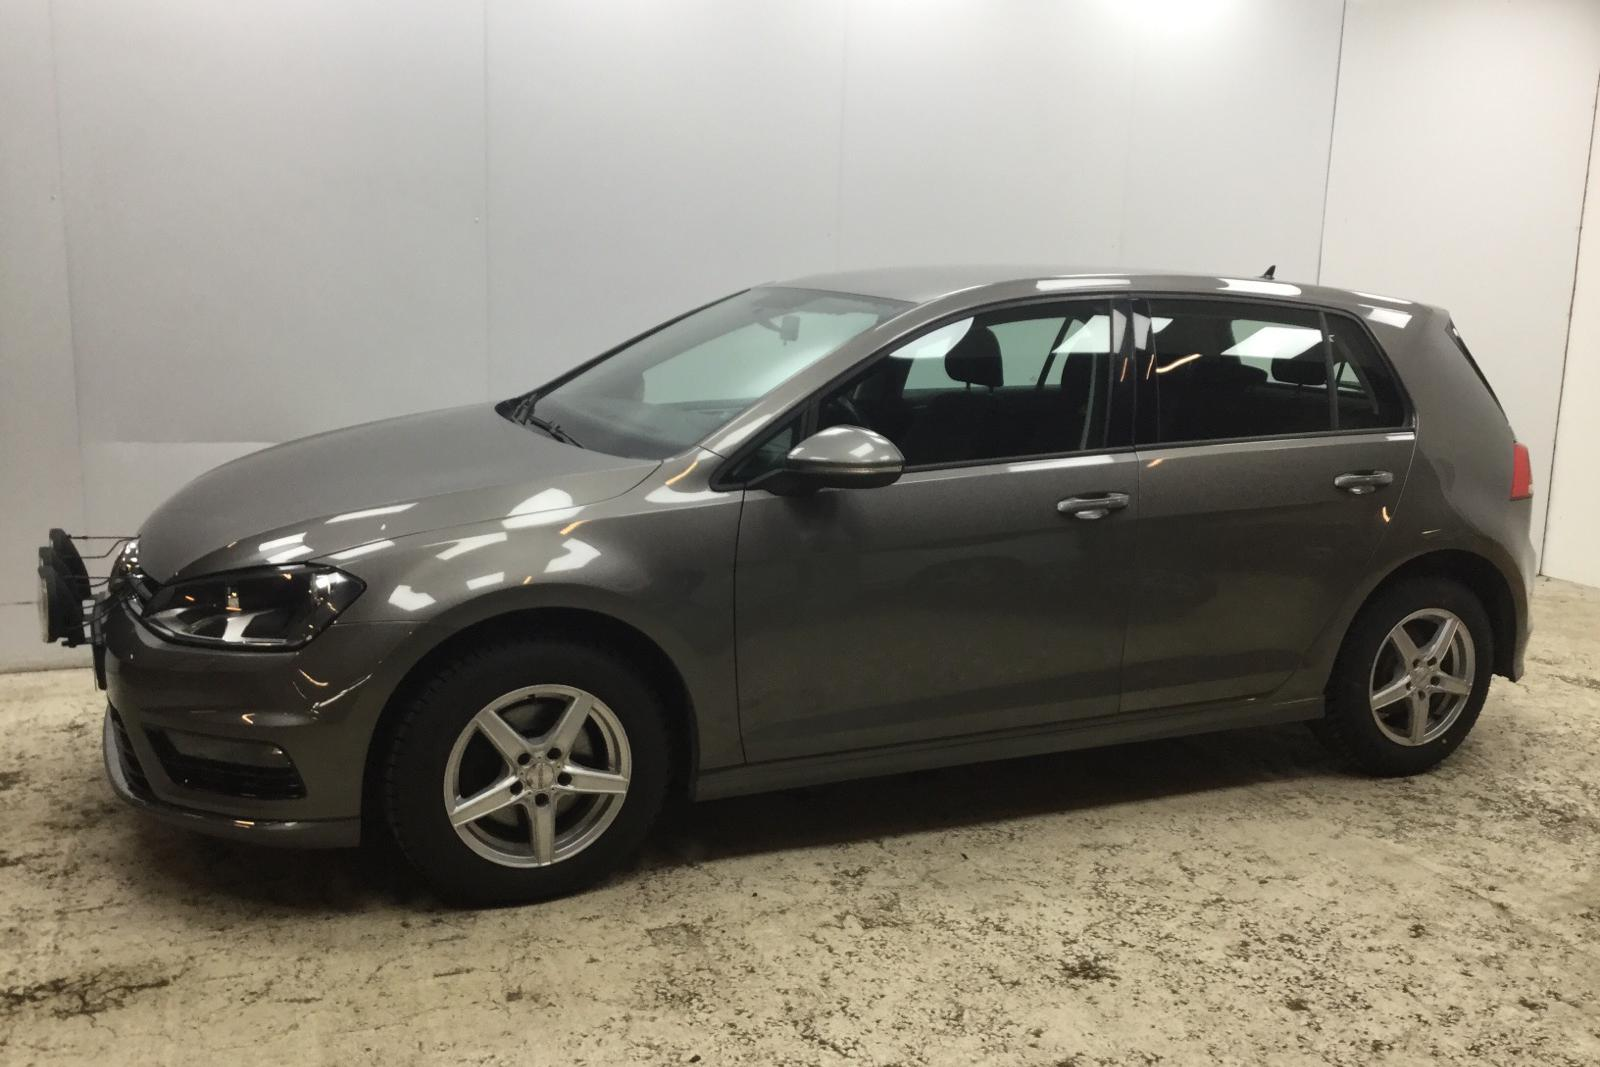 VW Golf VII 1.6 TDI BlueMotion Technology 5dr 4Motion (105hk) - 0 km - Manual - gray - 2015